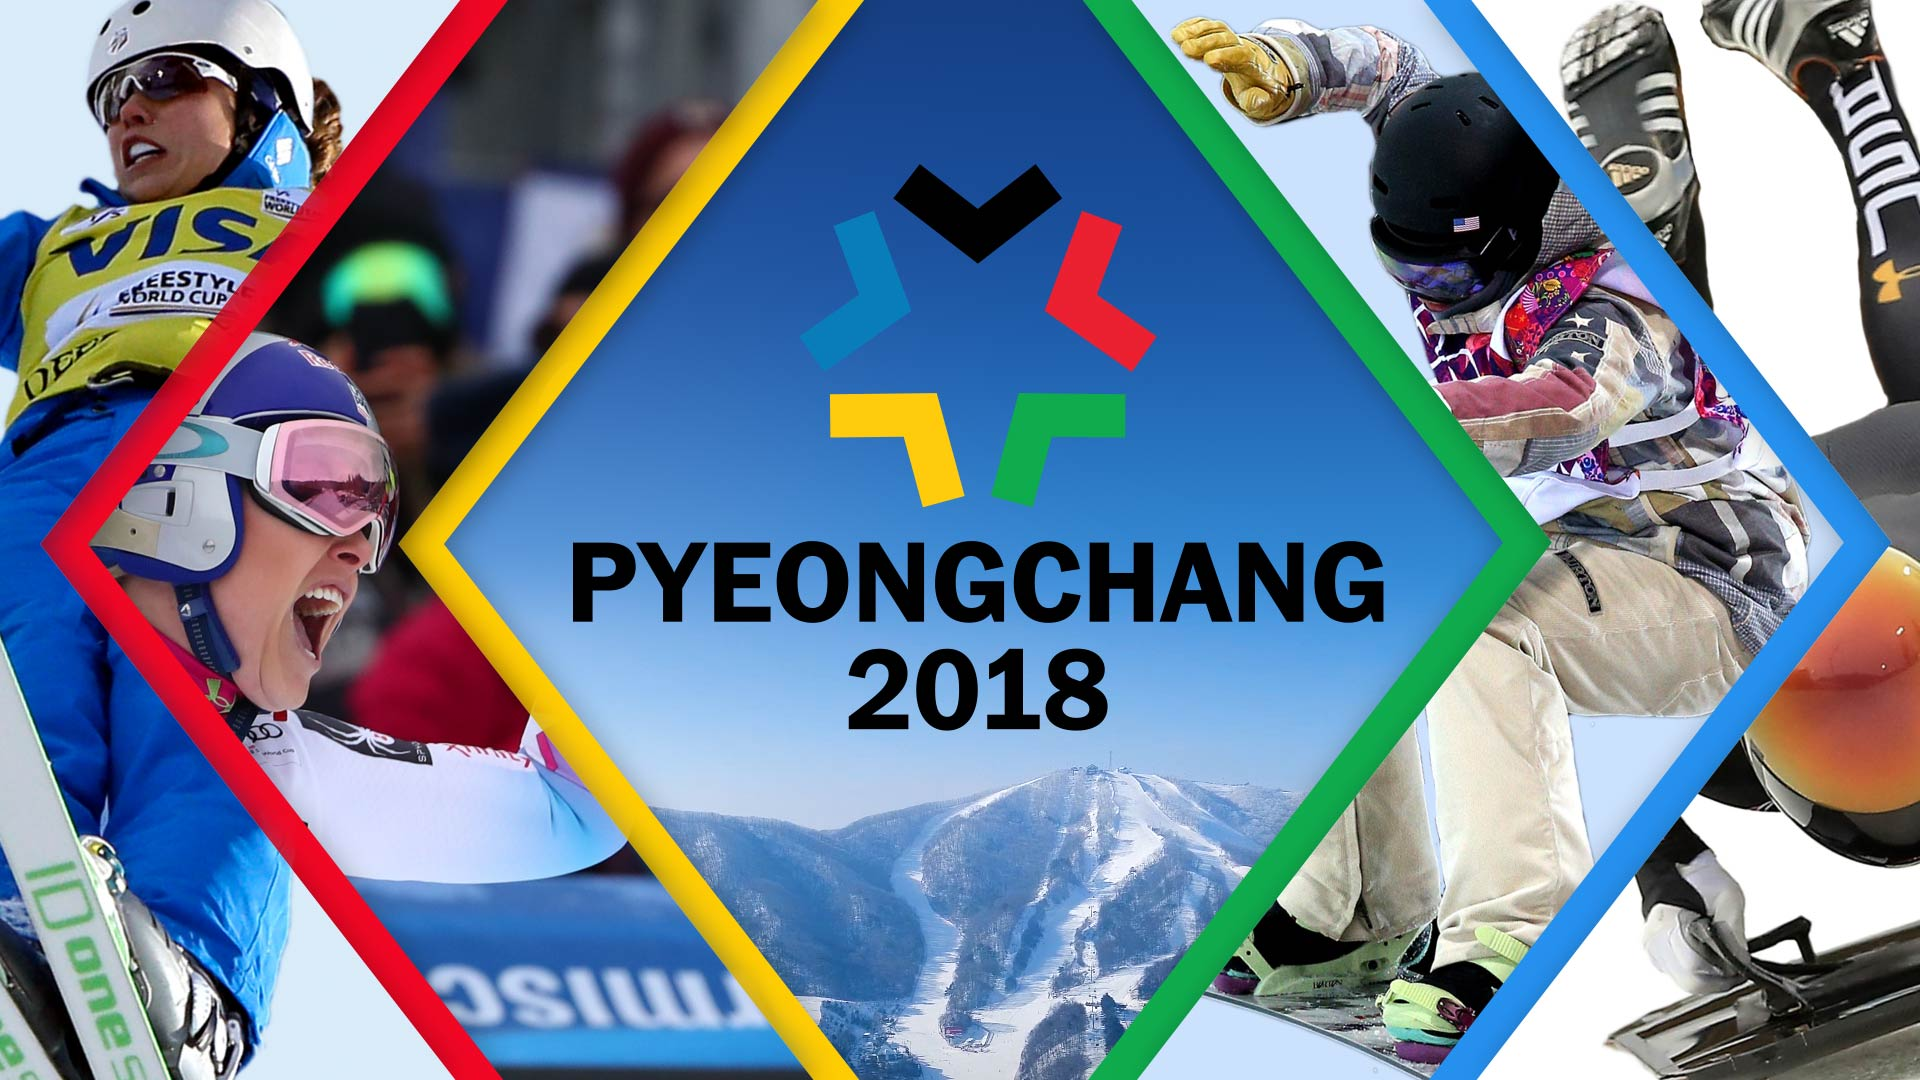 Winter Olympics 2018: The PyeongChang Games have finally arrived